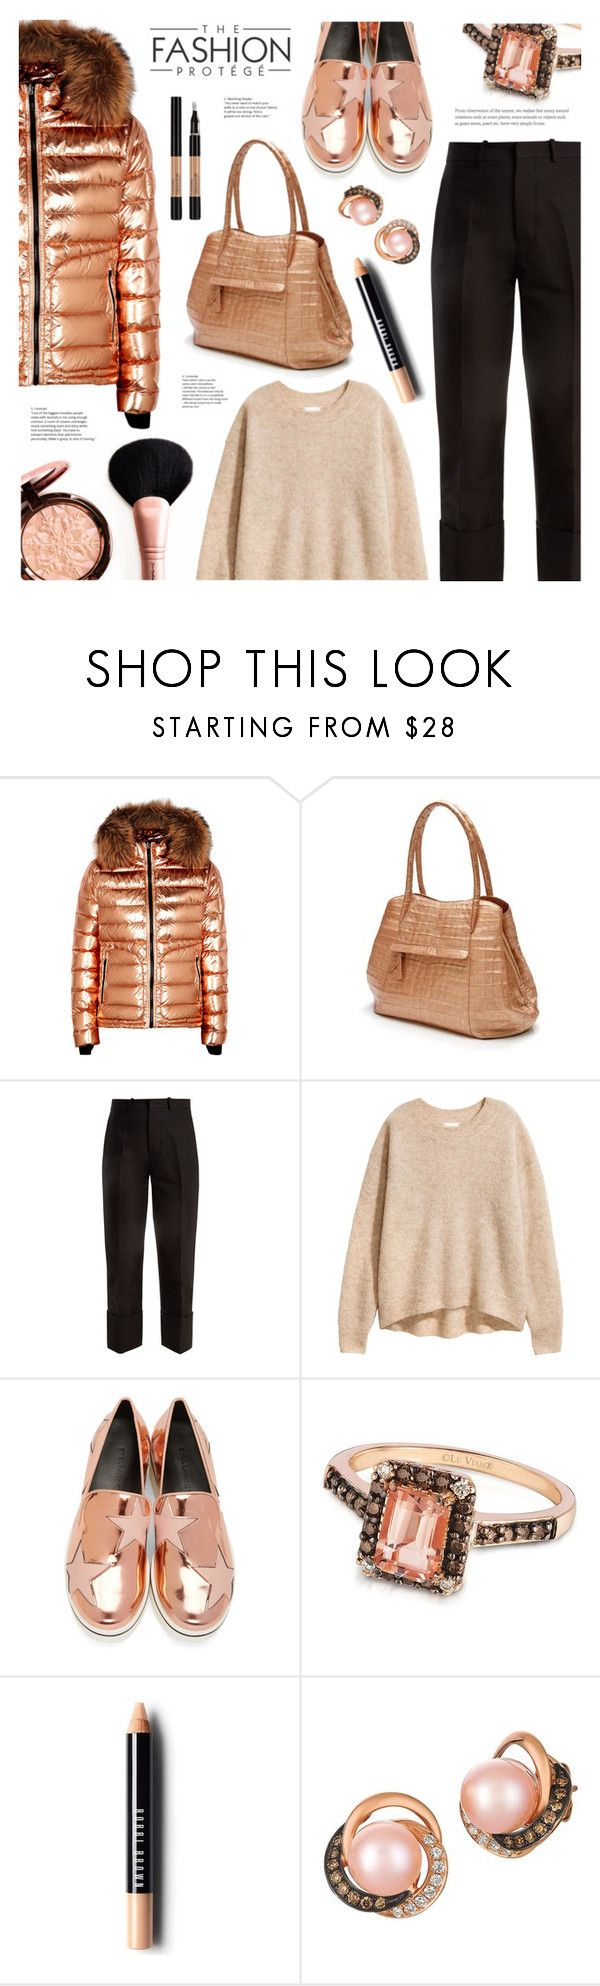 """Metallic Copper"" by ames-ym ❤ liked on Polyvore featuring 49 Winters, Nancy Gonzalez, Marni, STELLA McCARTNEY, LE VIAN, Bobbi Brown Cosmetics, Lancôme, metallic, satchel and sneakers"